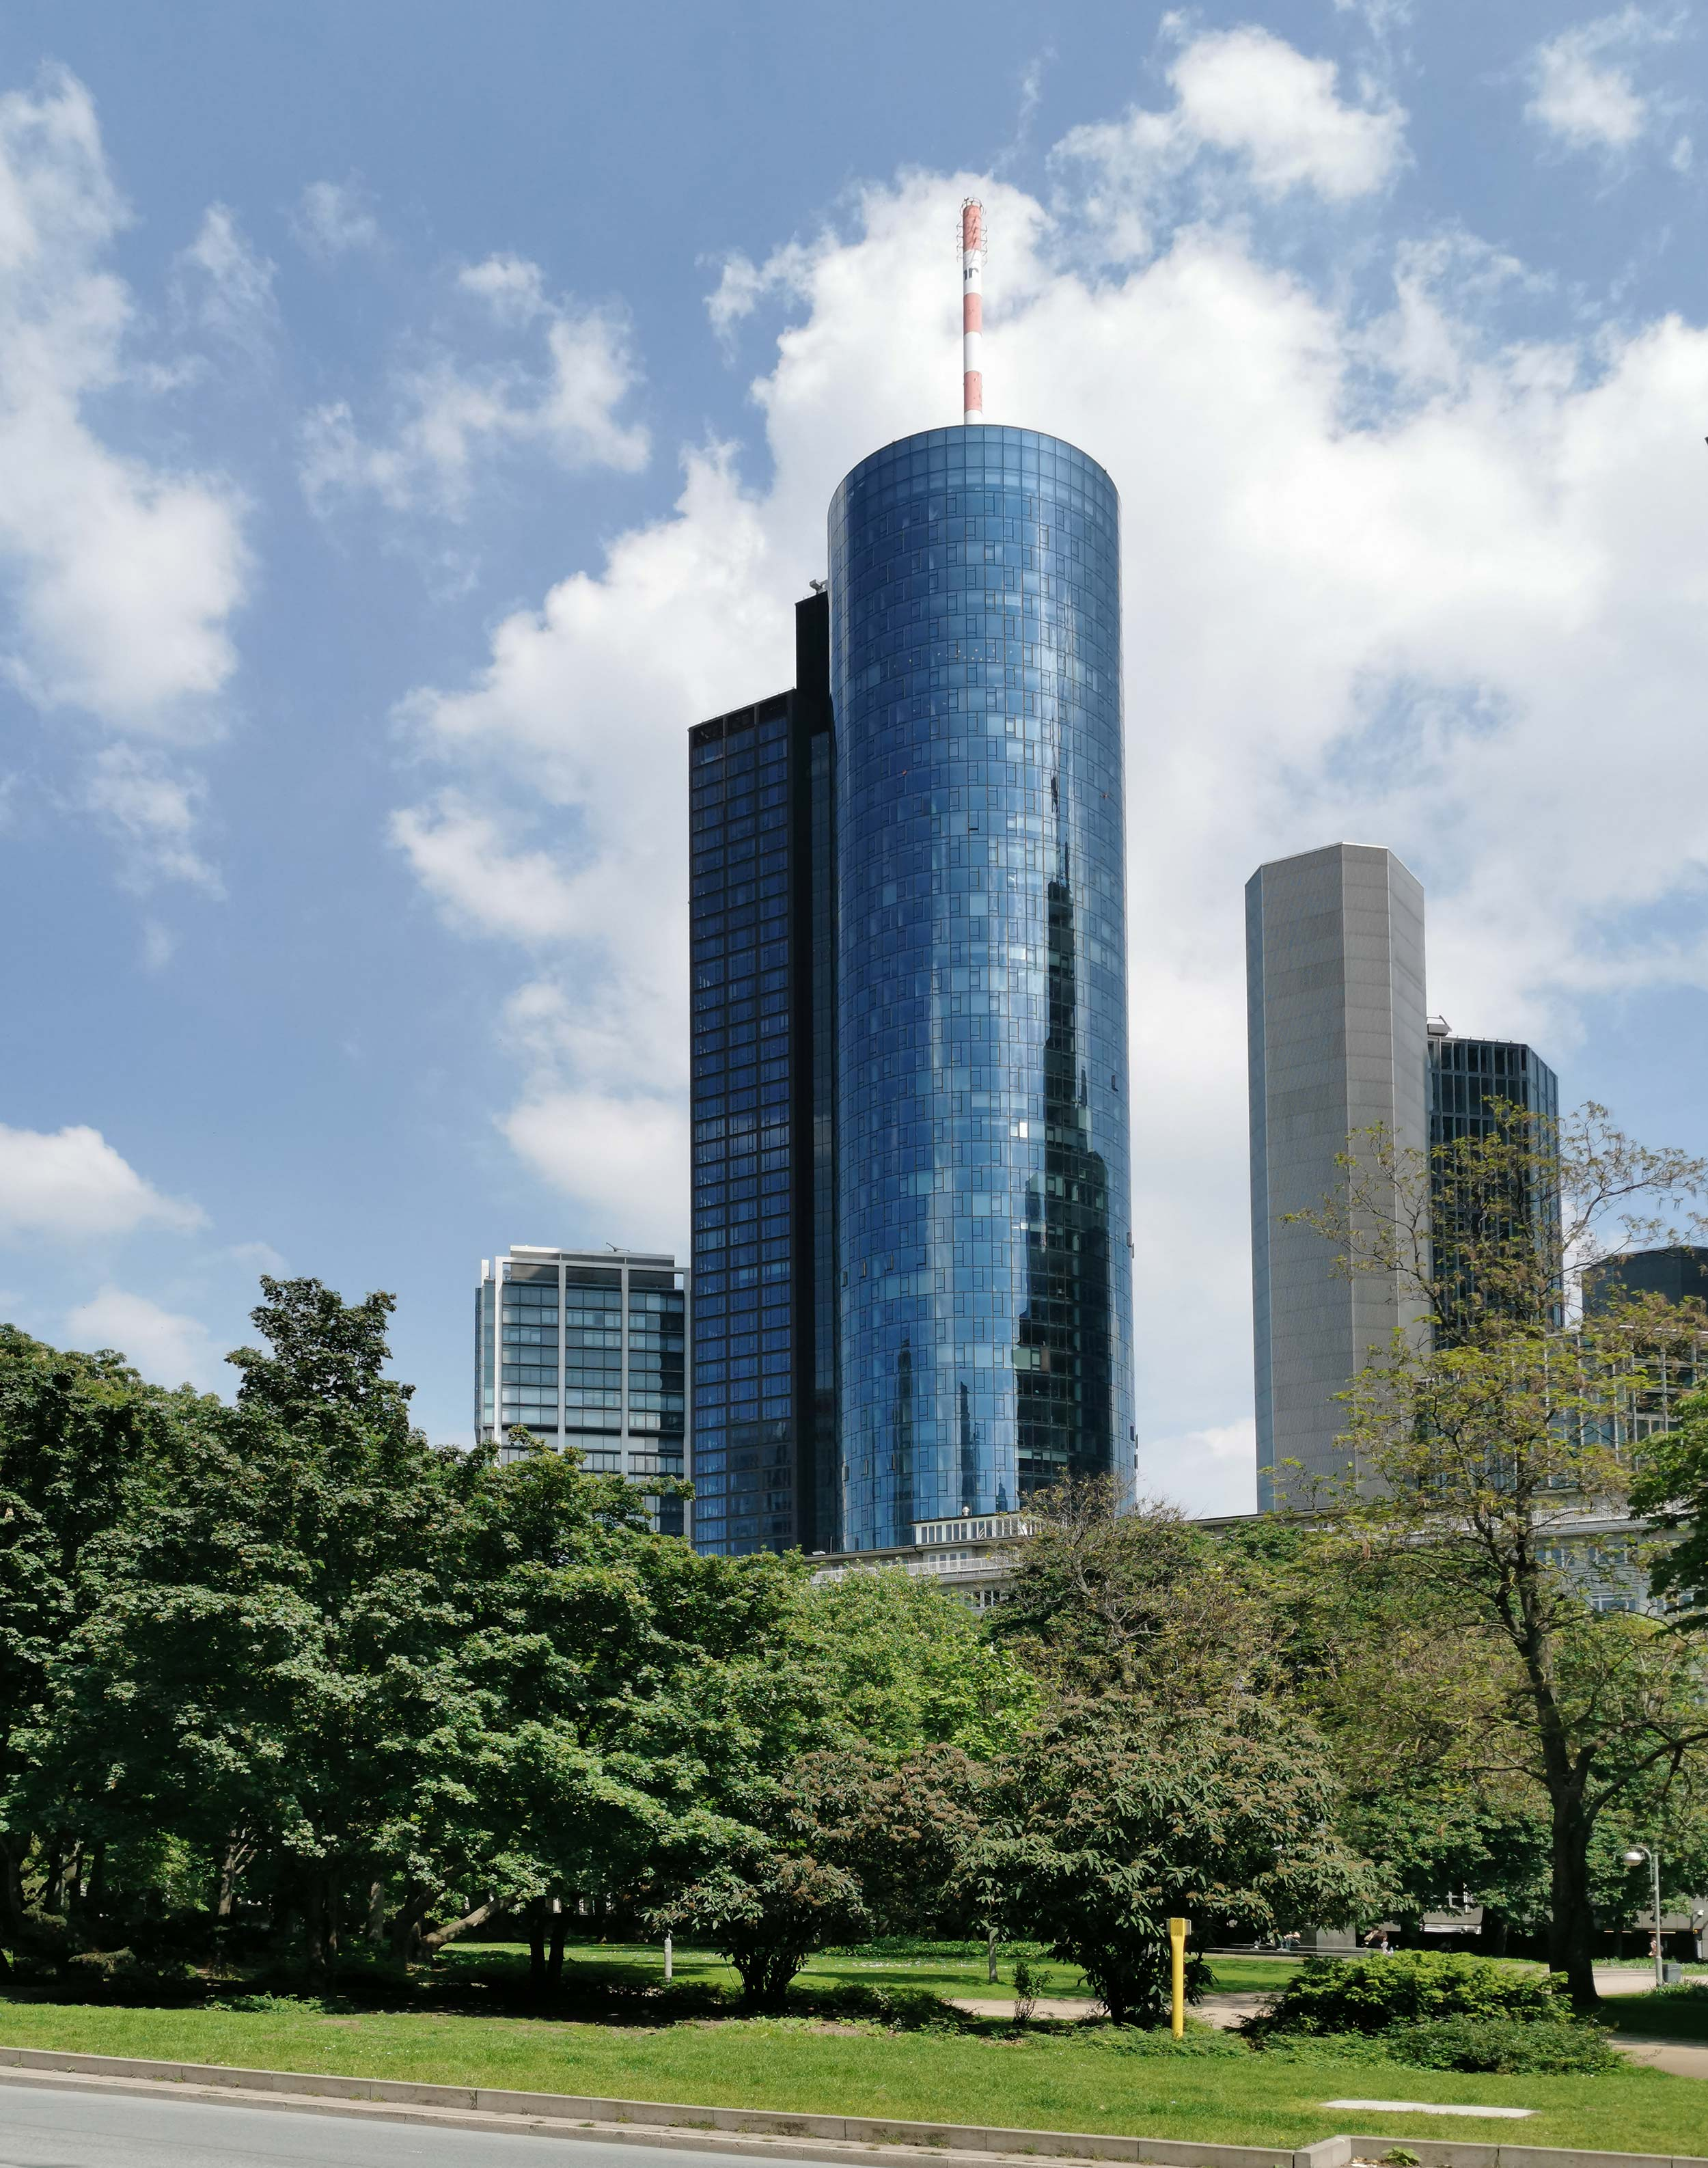 MAIN TOWER in Frankfurt - modern office tower - modern architecture - glass tower